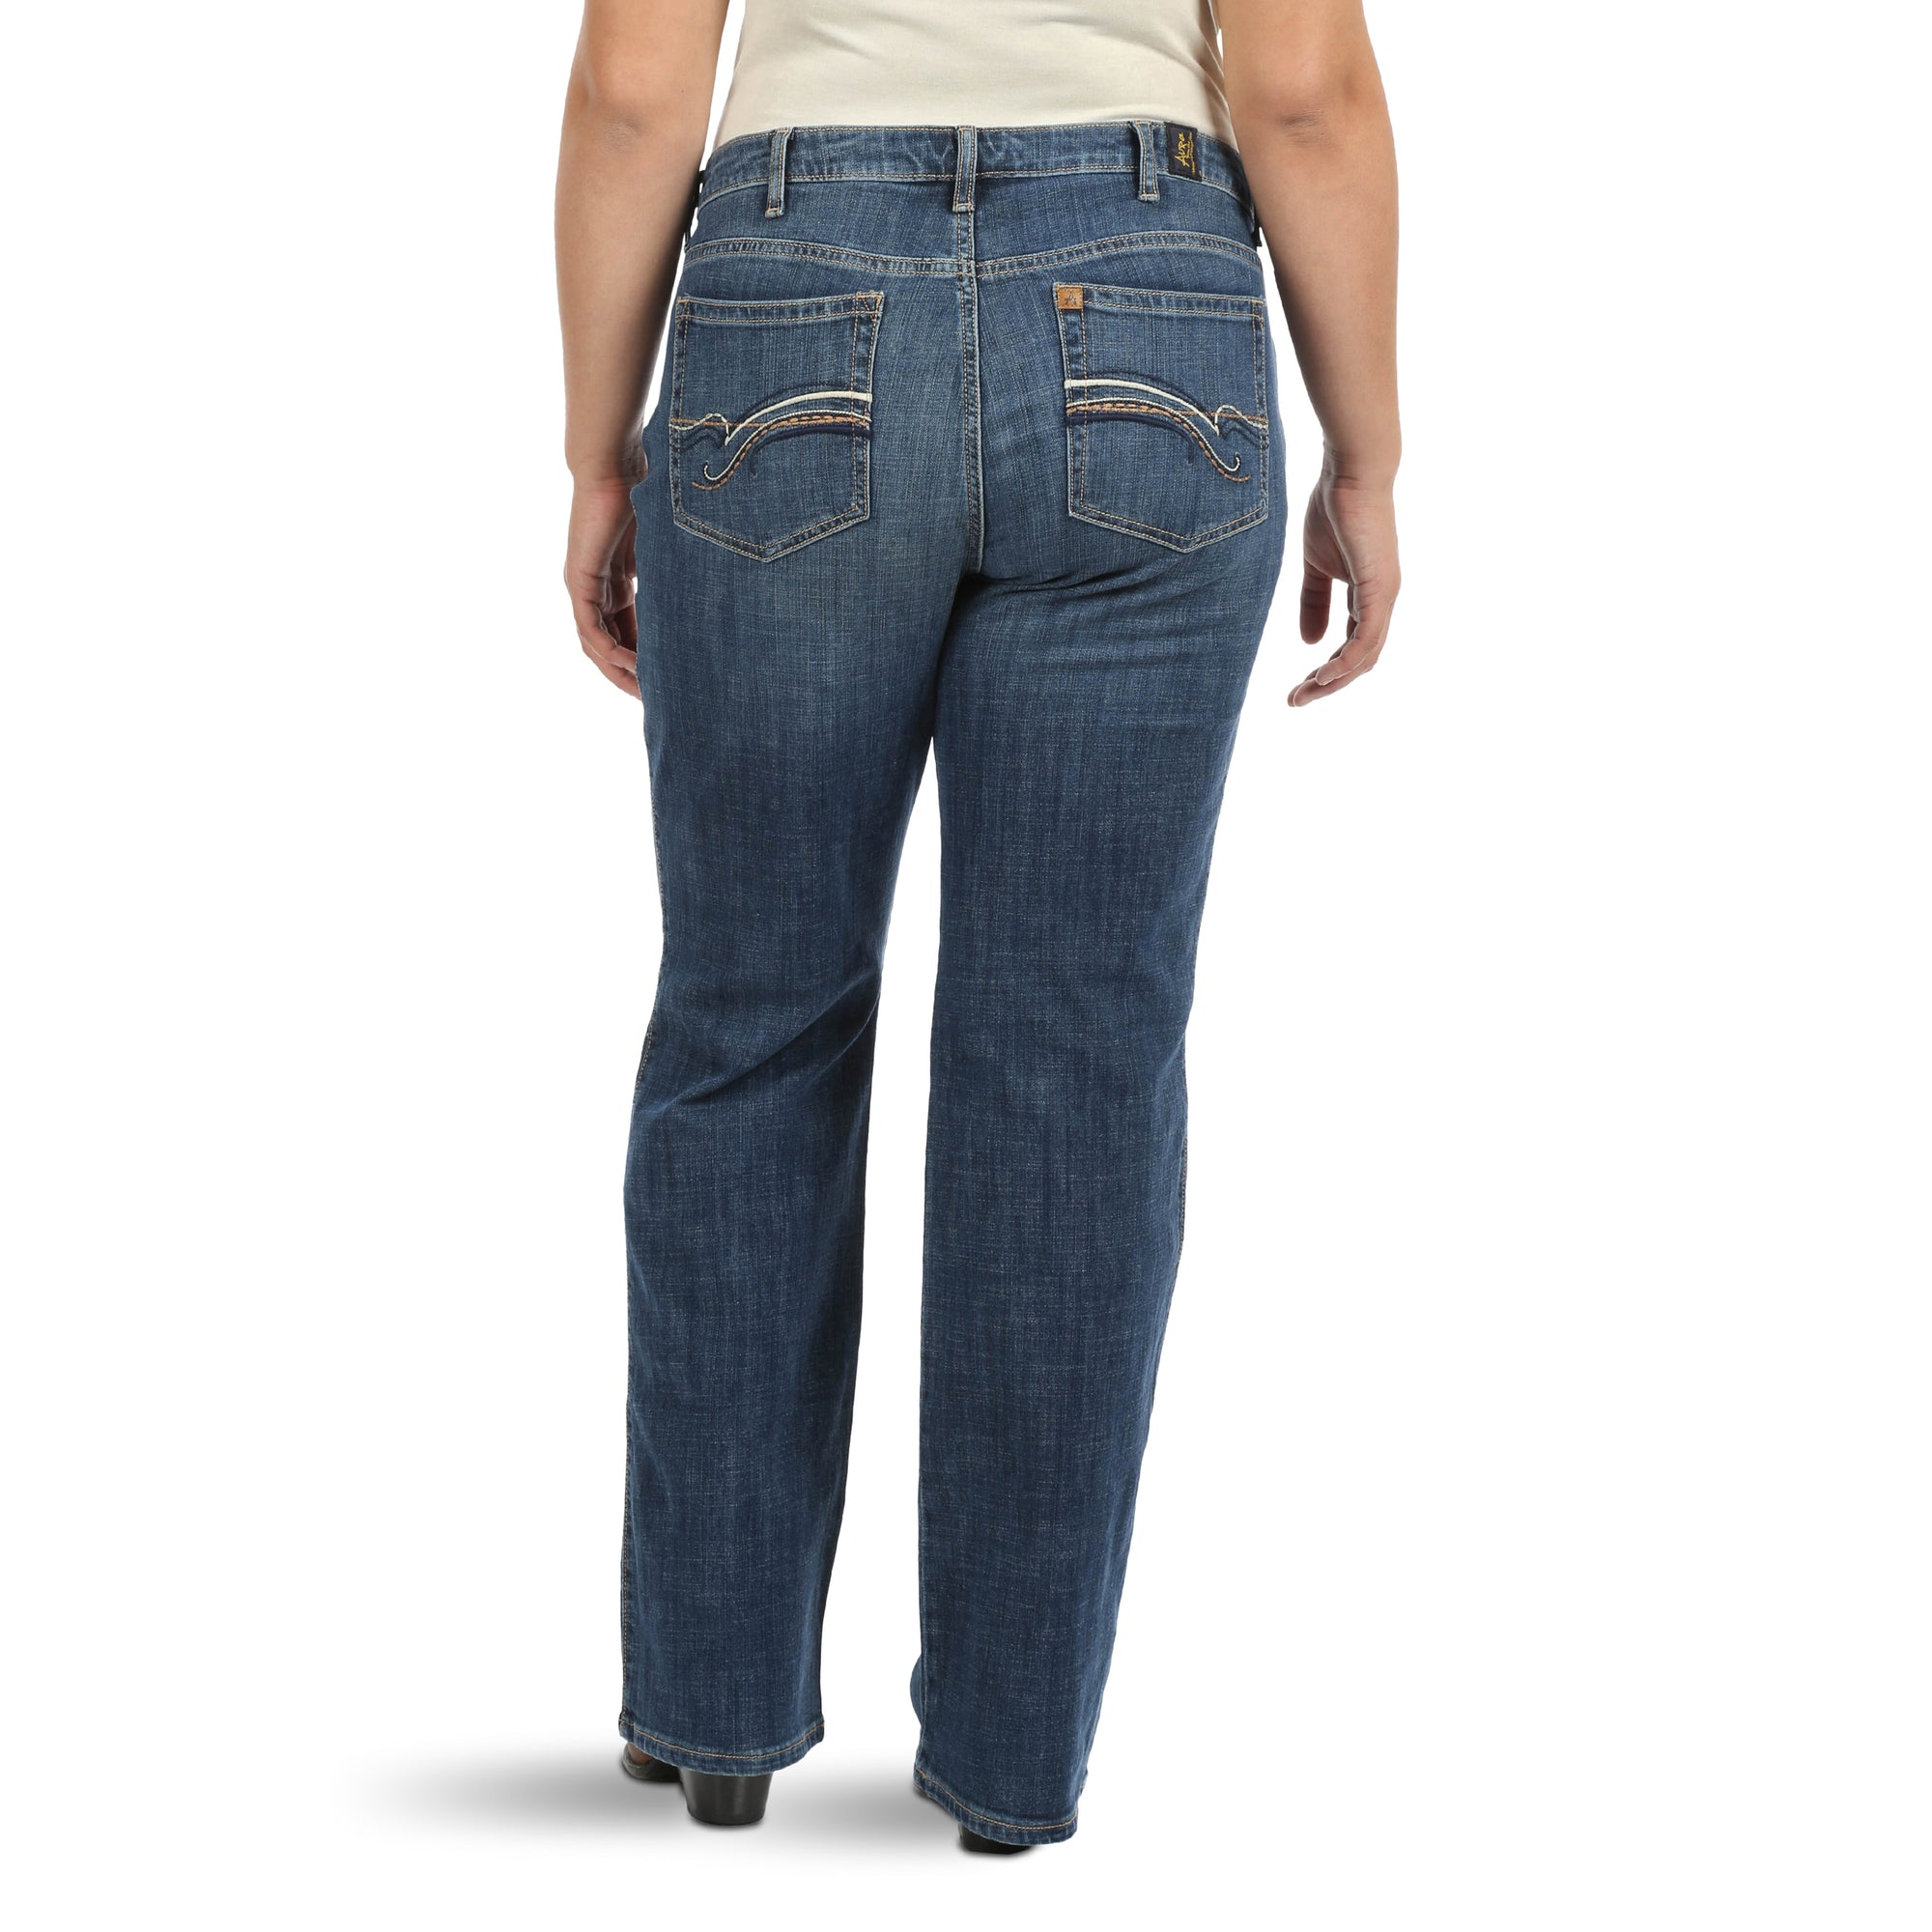 Wrangler Women's Aura Instantly Slimming Jeans - Plus